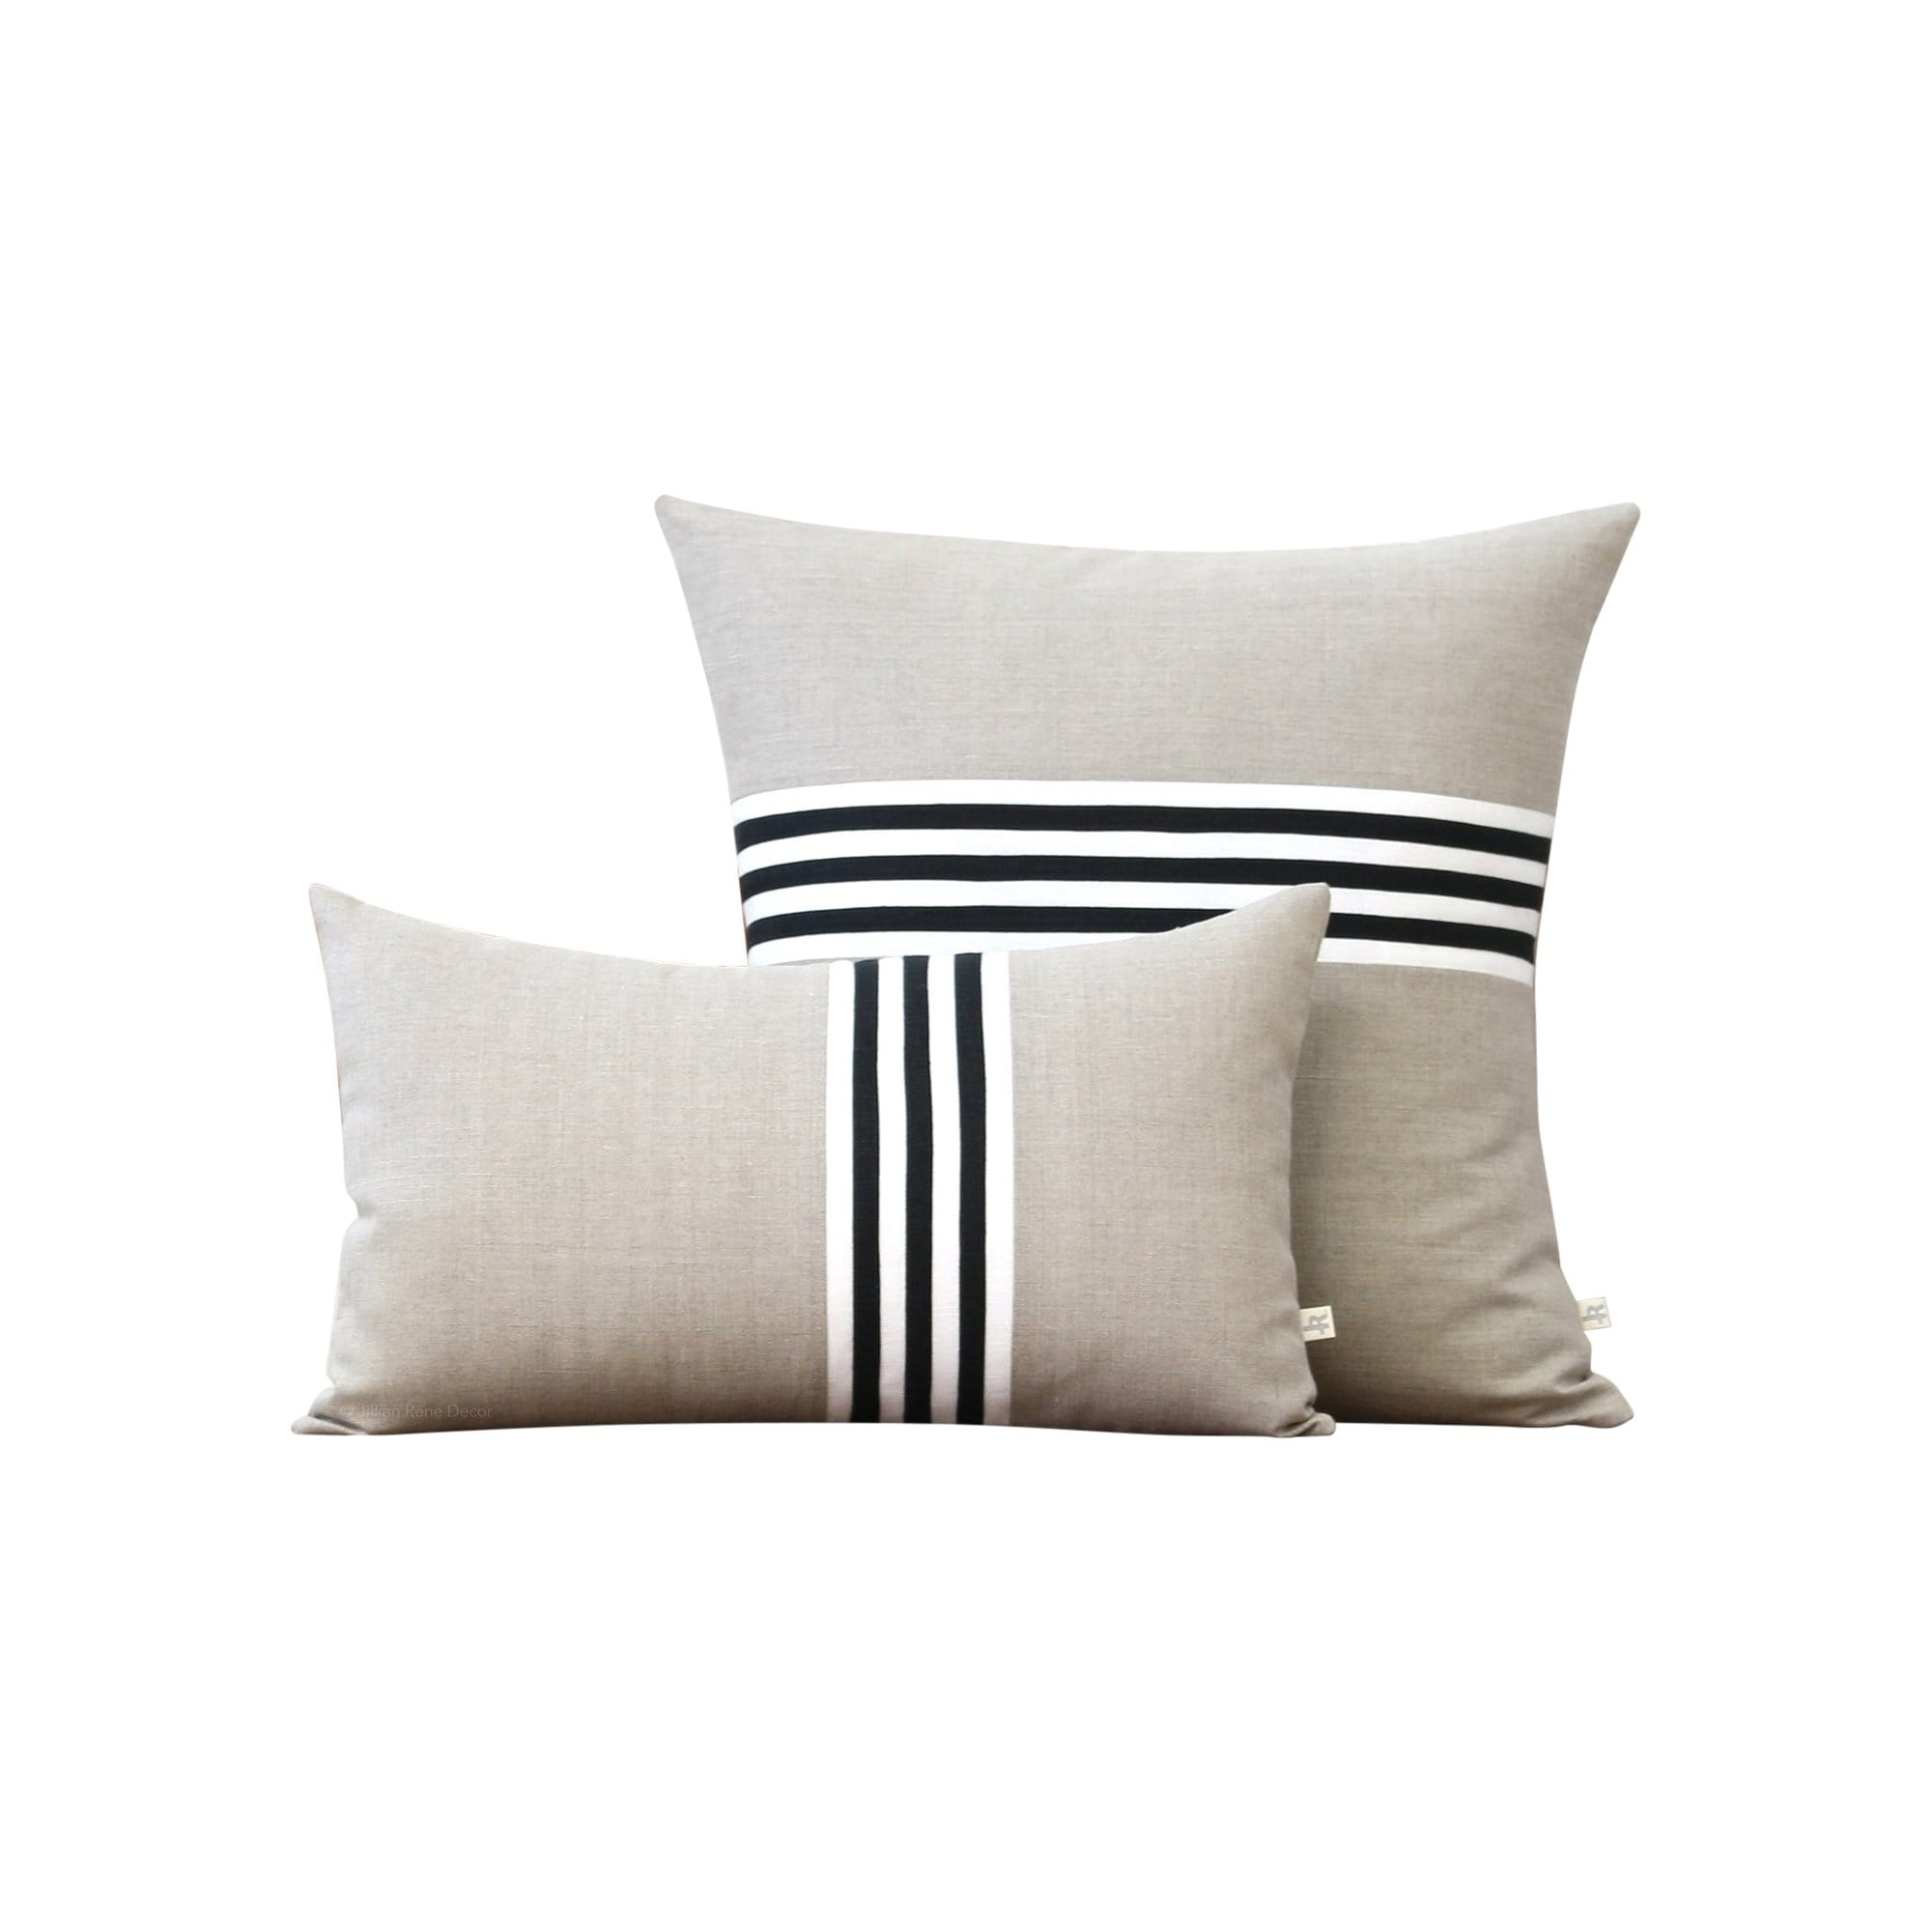 Jillian Rene Decor Cushions + Throws Banded Stripe Pillow - Black, Cream and Natural